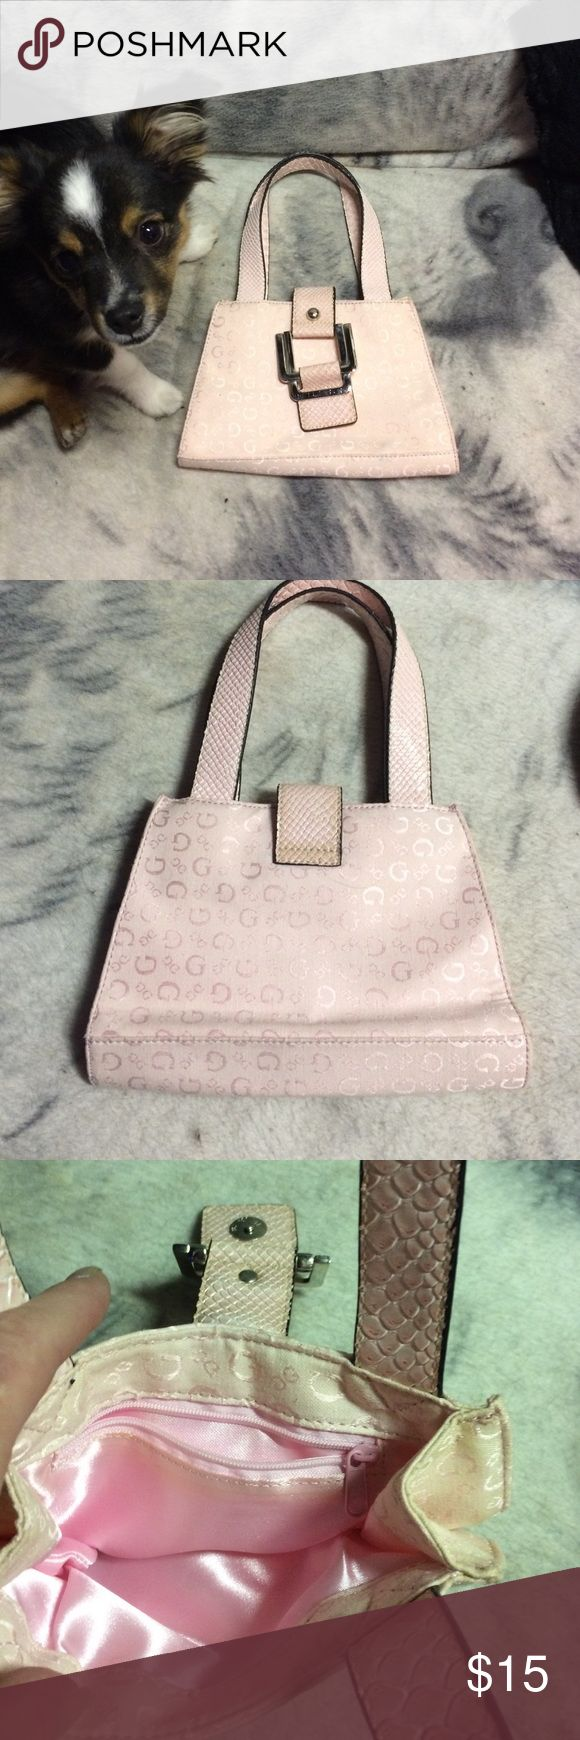 """Guess pink handbag ❤️❤️❤️❤️❤️ GUESS light pink small signature handbag, excellent condition inside and out ,only small light blue mark, see in pic.  """"max"""", toy Australian shepherd NOT included, lol Guess Bags Mini Bags"""